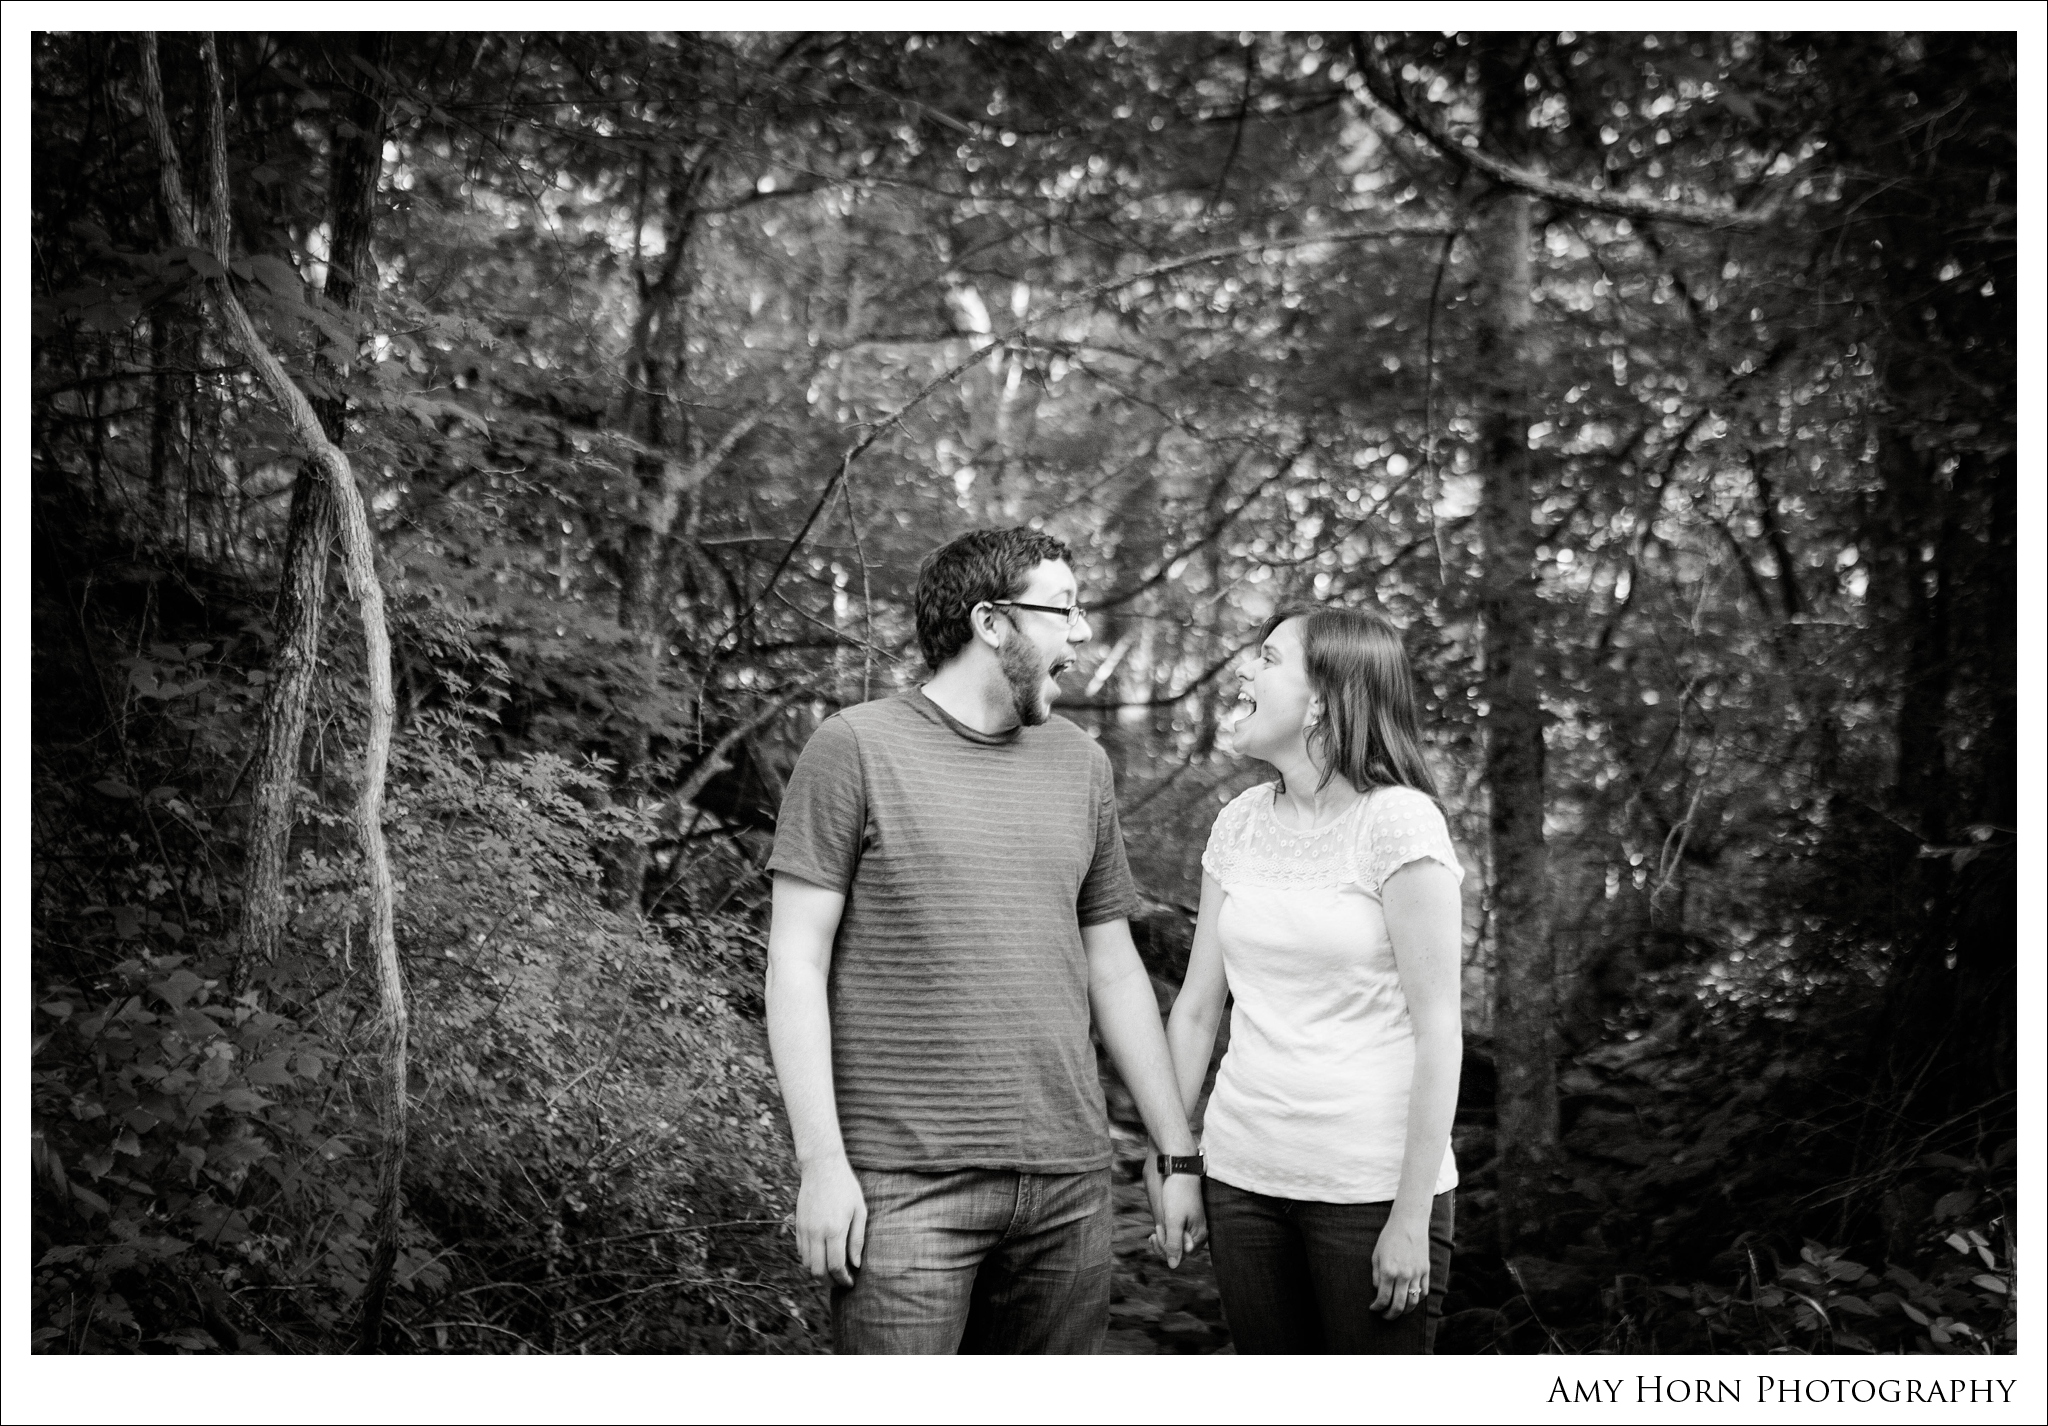 madison indiana wedding photographer, lawrenceburg indiana wedding, amy horn, engagement photography, field photography, country engagement session, wedding and engagement session ideas, engagement session023.jpg